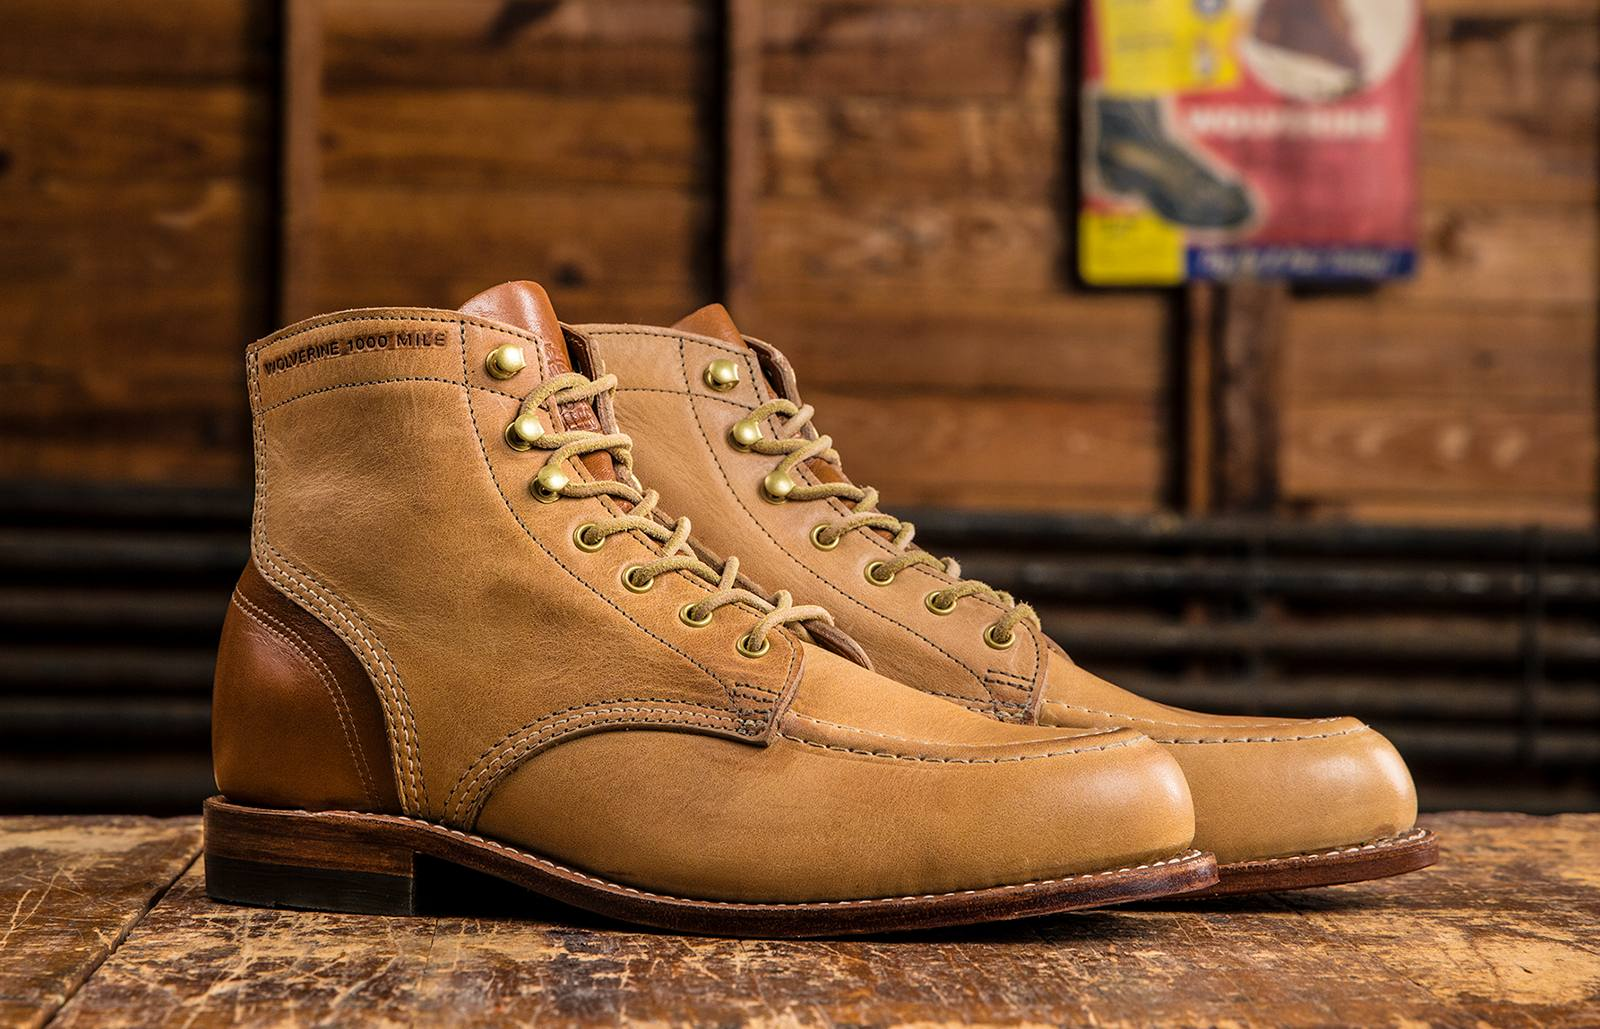 The Wolverine 1940 Boot